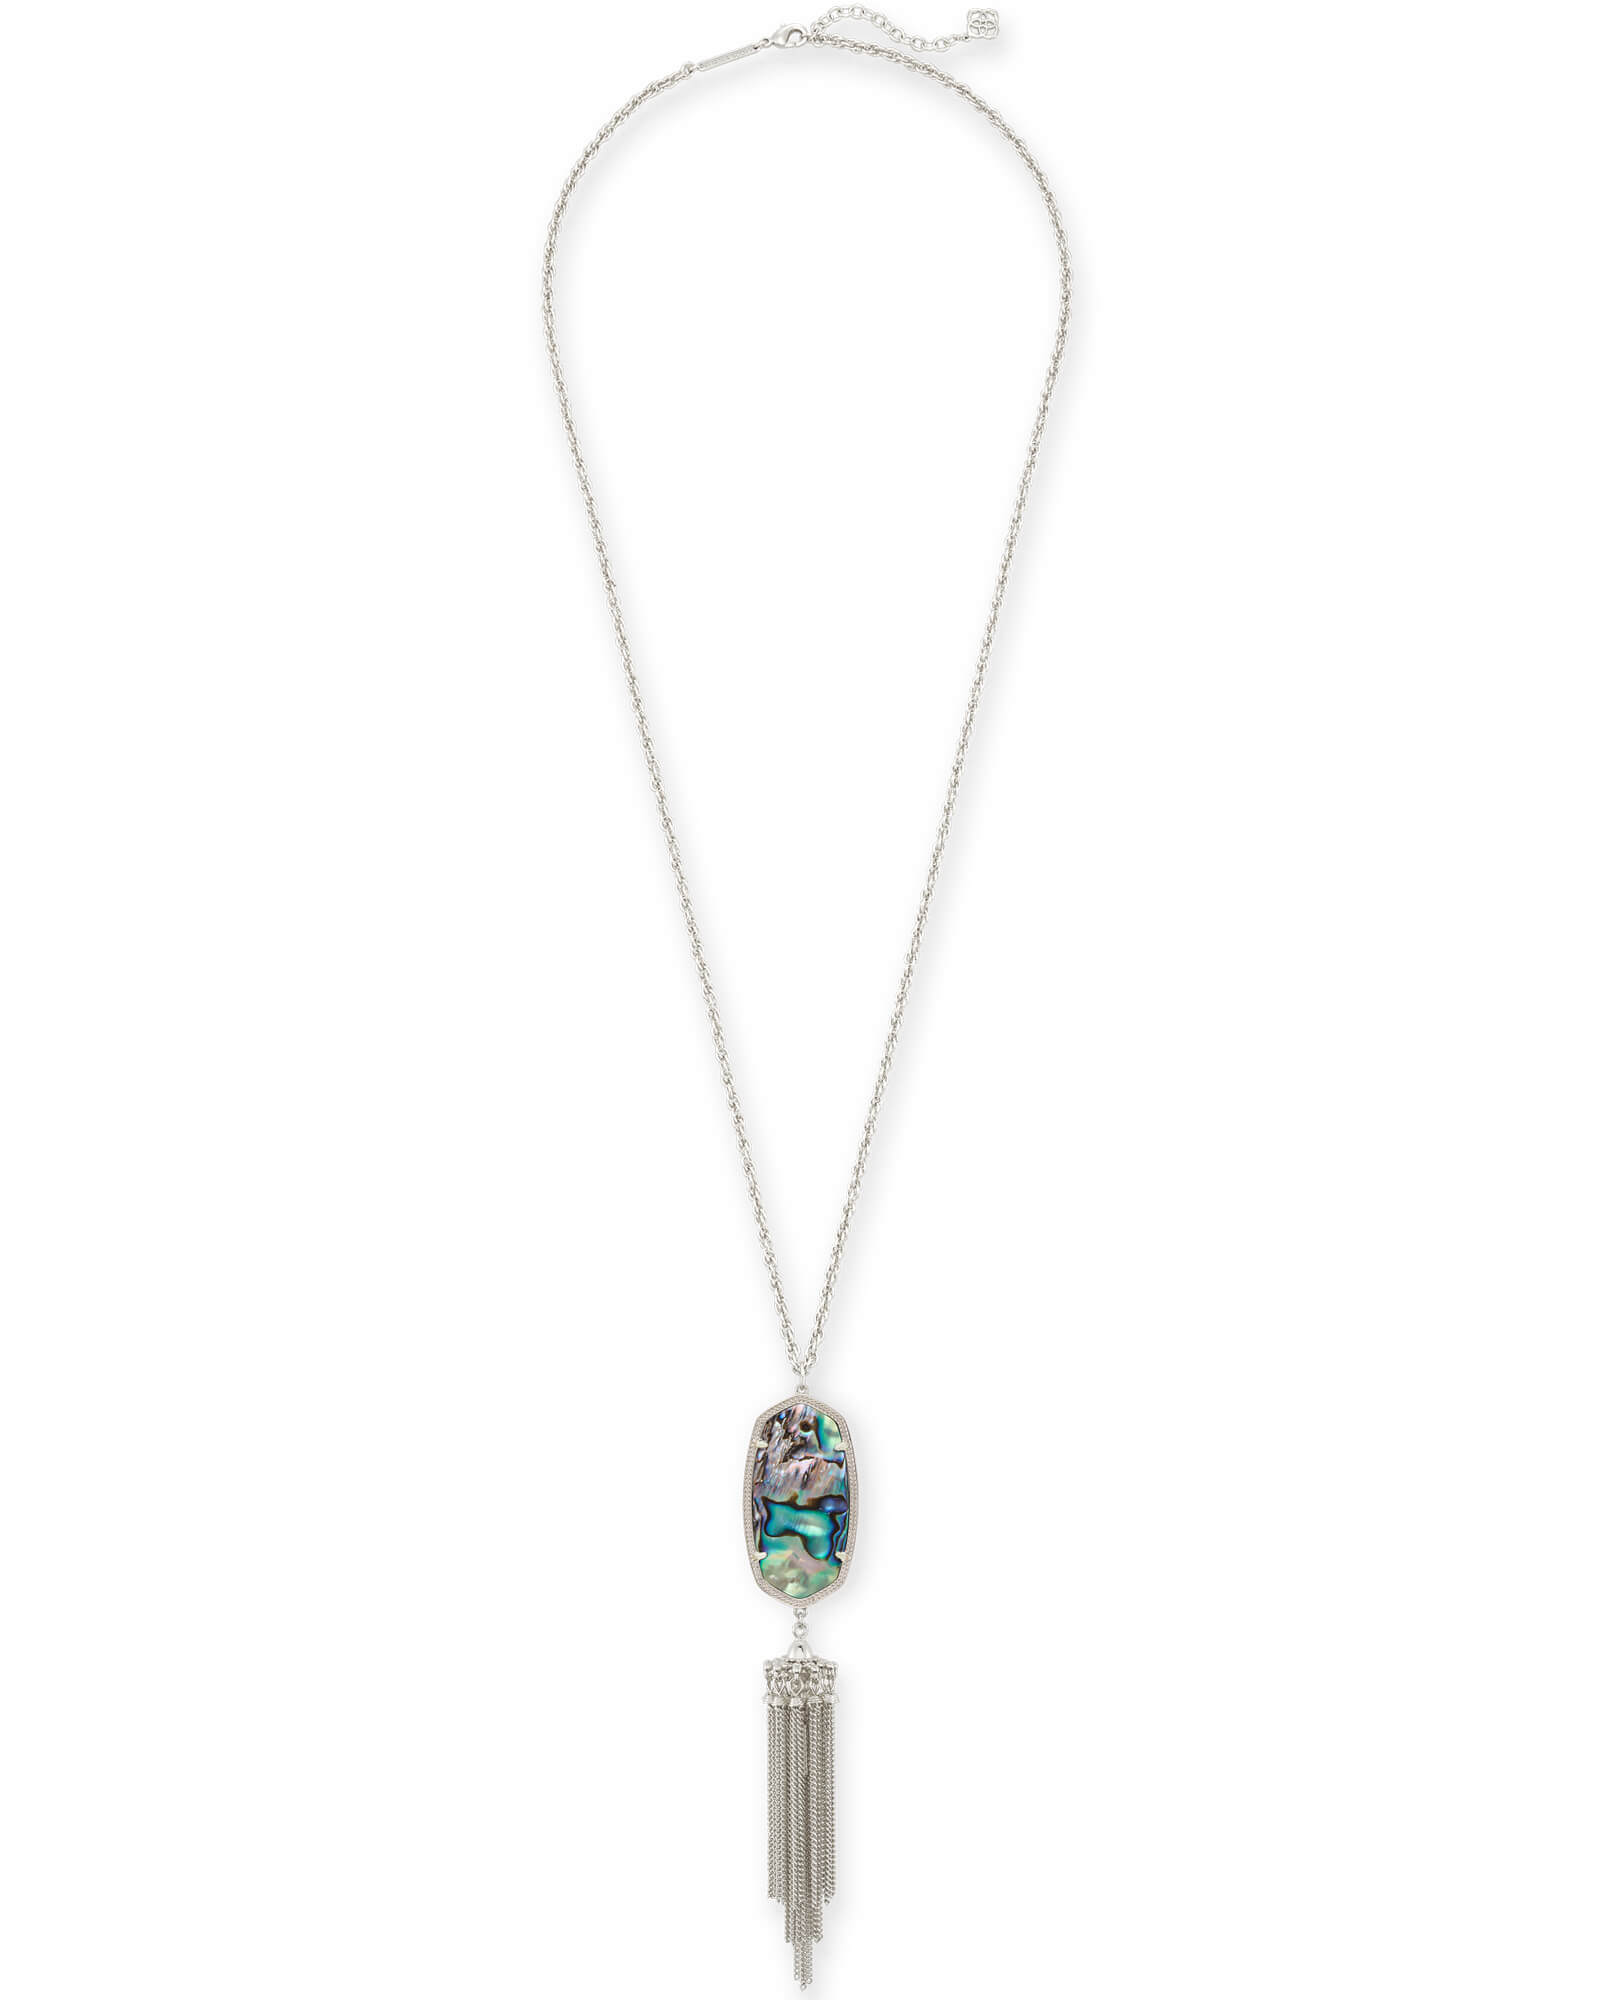 Rayne Silver Long Pendant Necklace in Abalone Shell